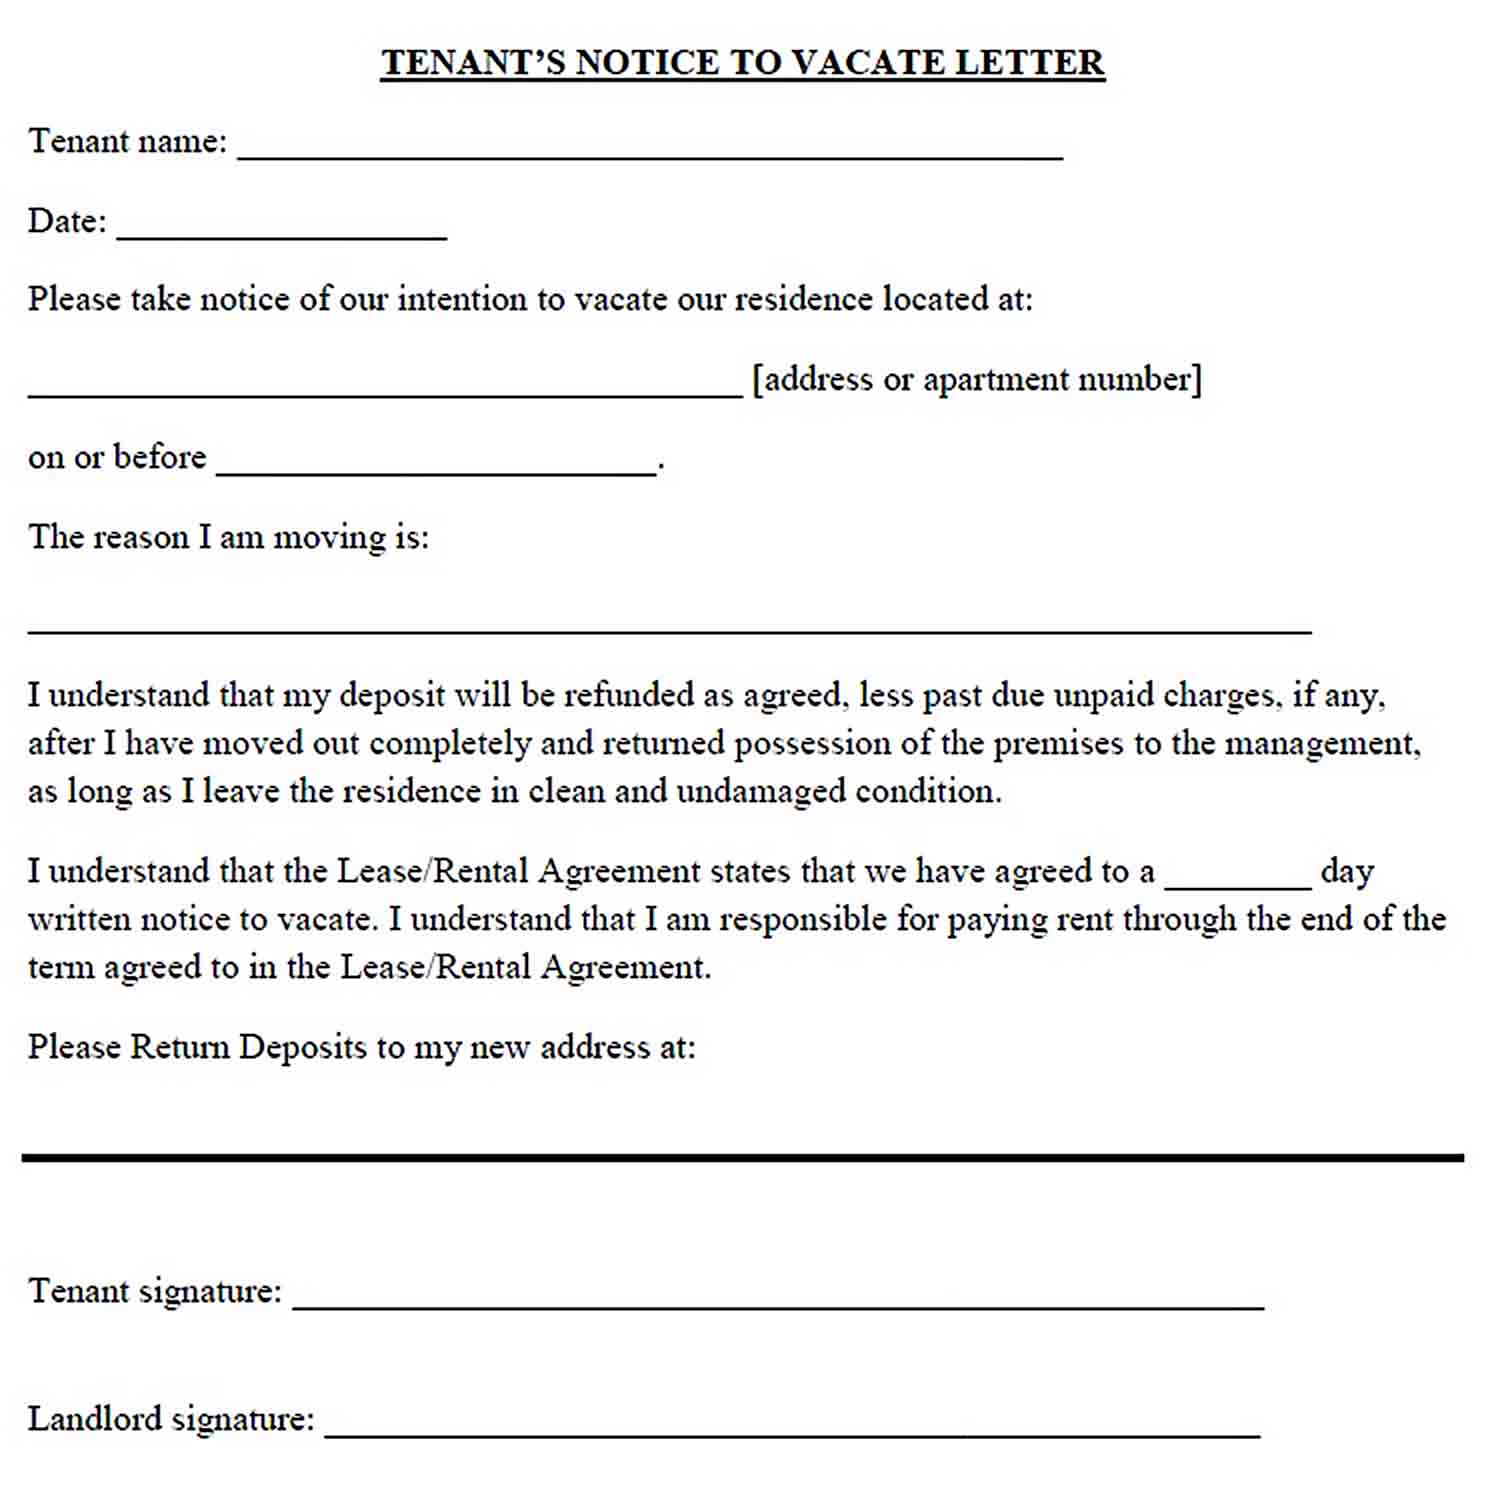 Tenant Notice Vacate Letter sample